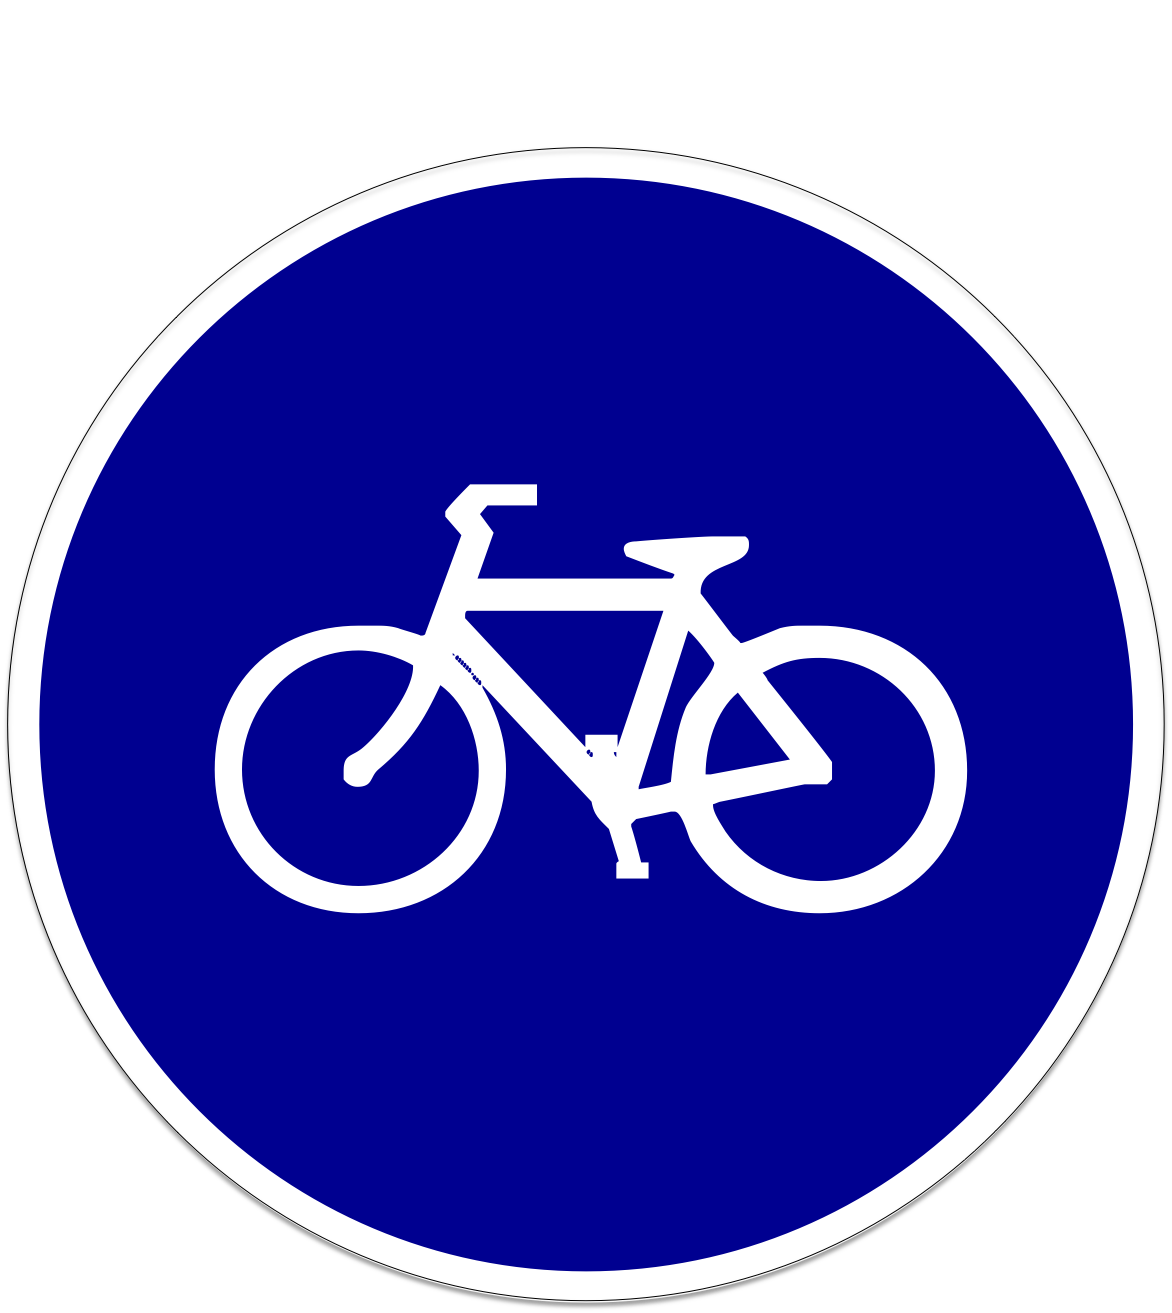 Datei:Indonesia New Road Sign Mndtry 6b3.png